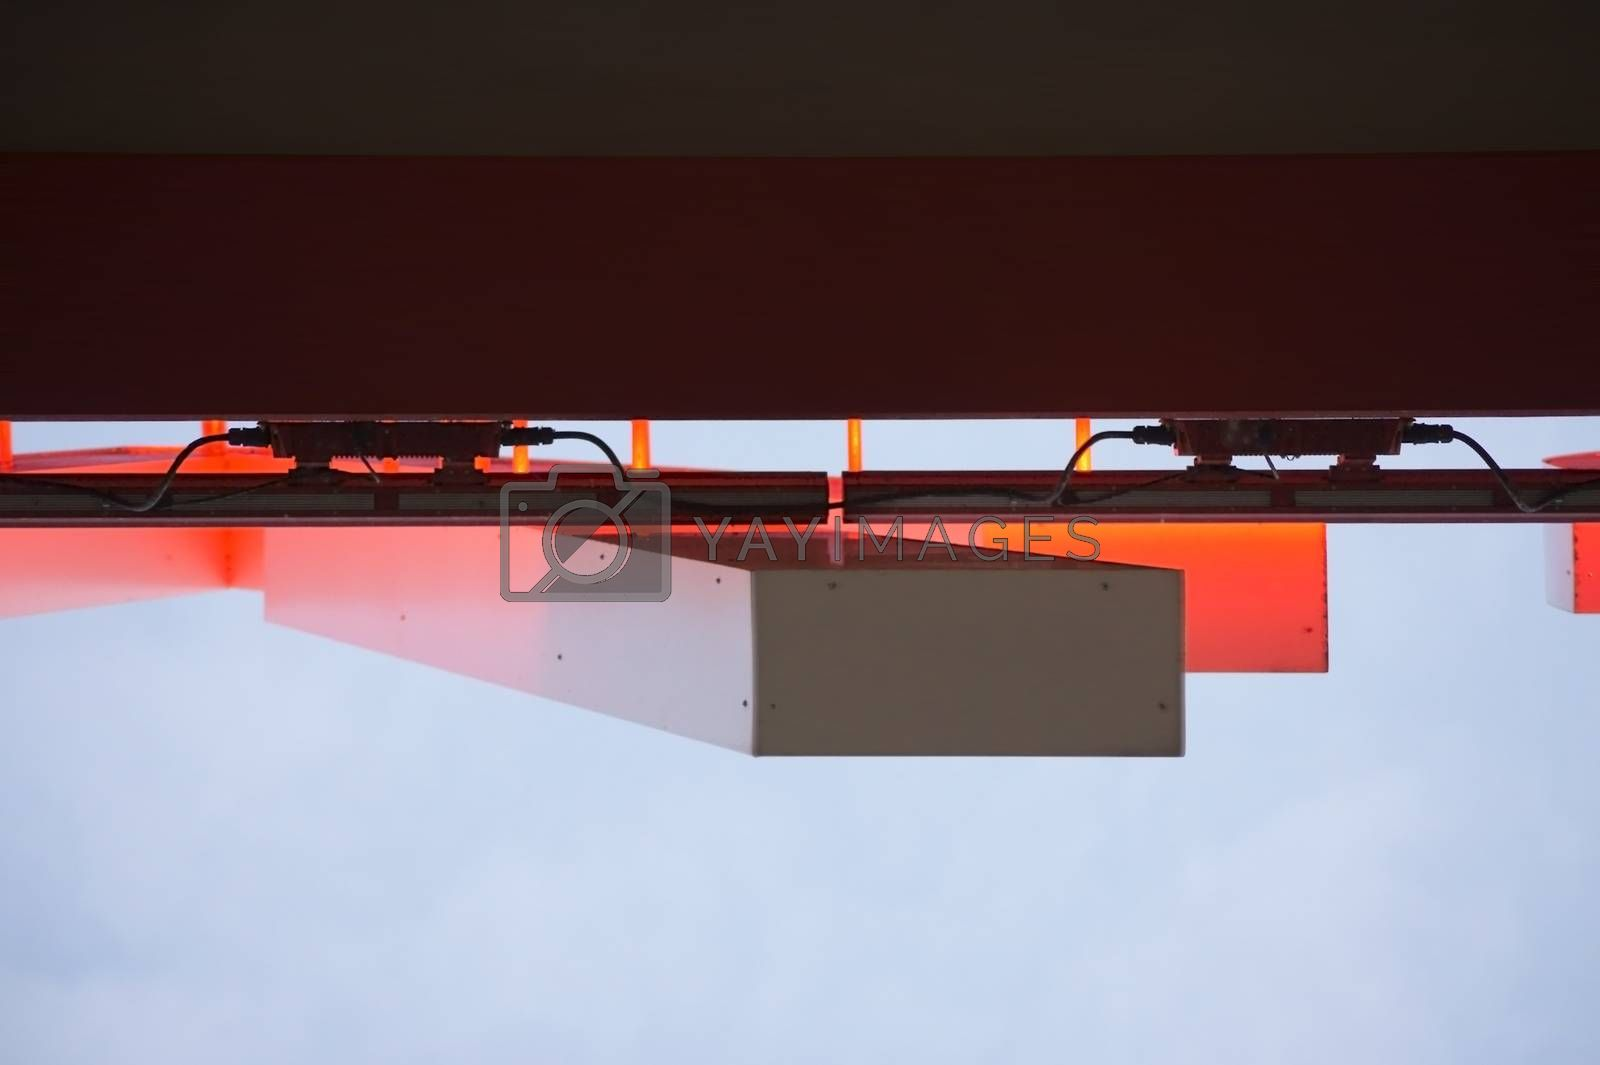 The bottom view and a detail of an illuminated red neon sign.